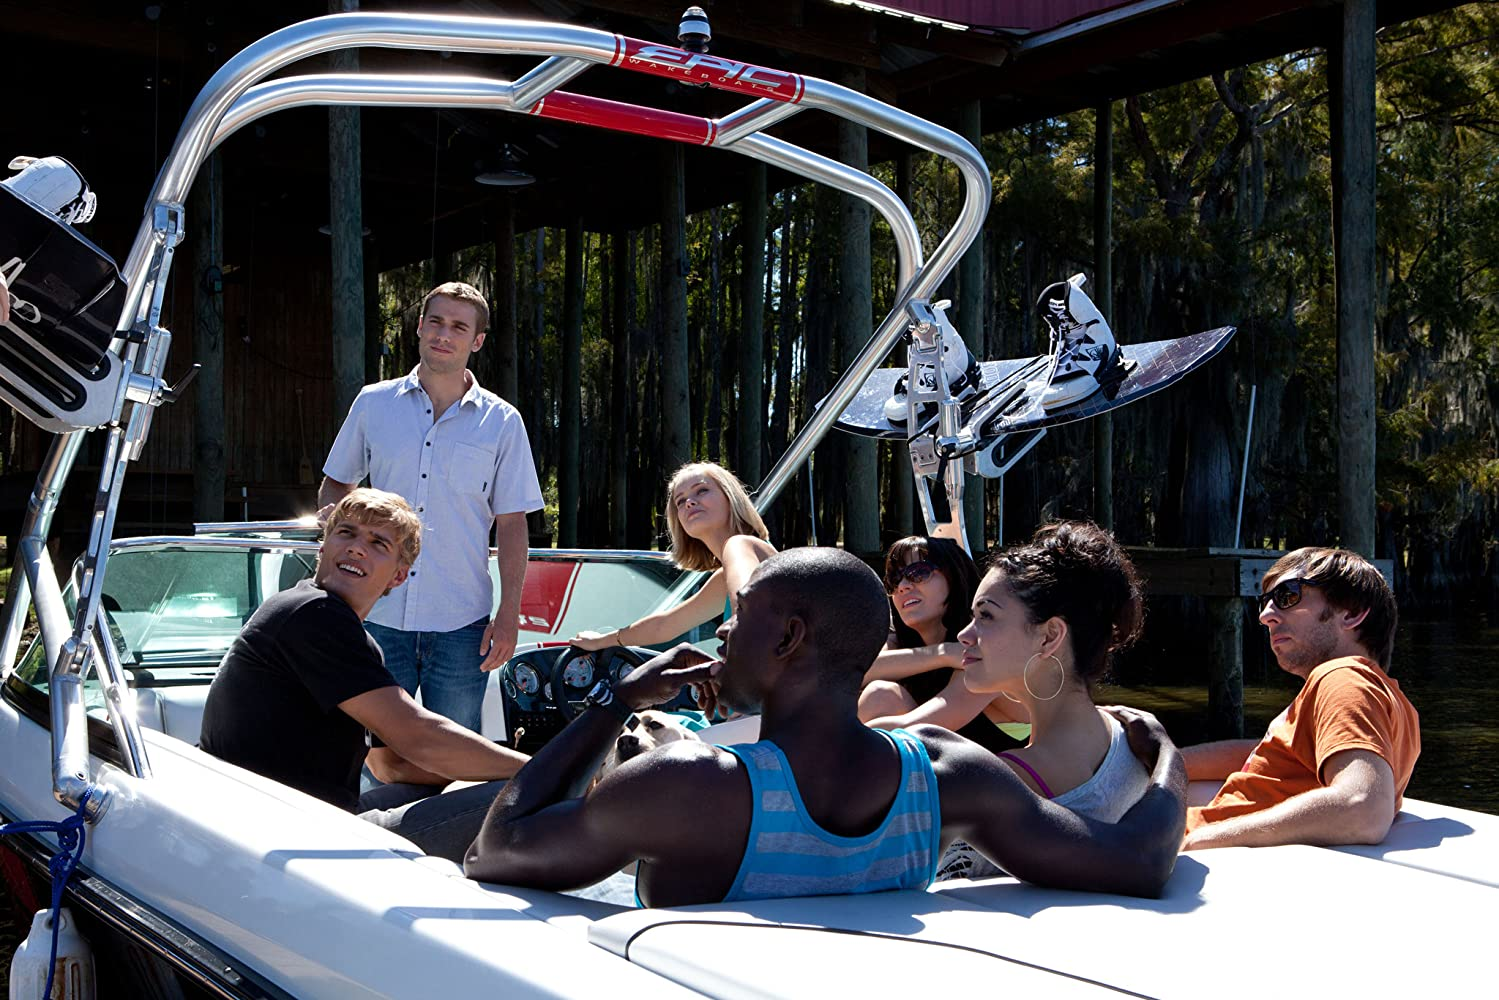 Joel David Moore, Sara Paxton, Alyssa Diaz, Dustin Milligan, Katharine McPhee, Sinqua Walls, and Chris Zylka in Shark Night 3D (2011)